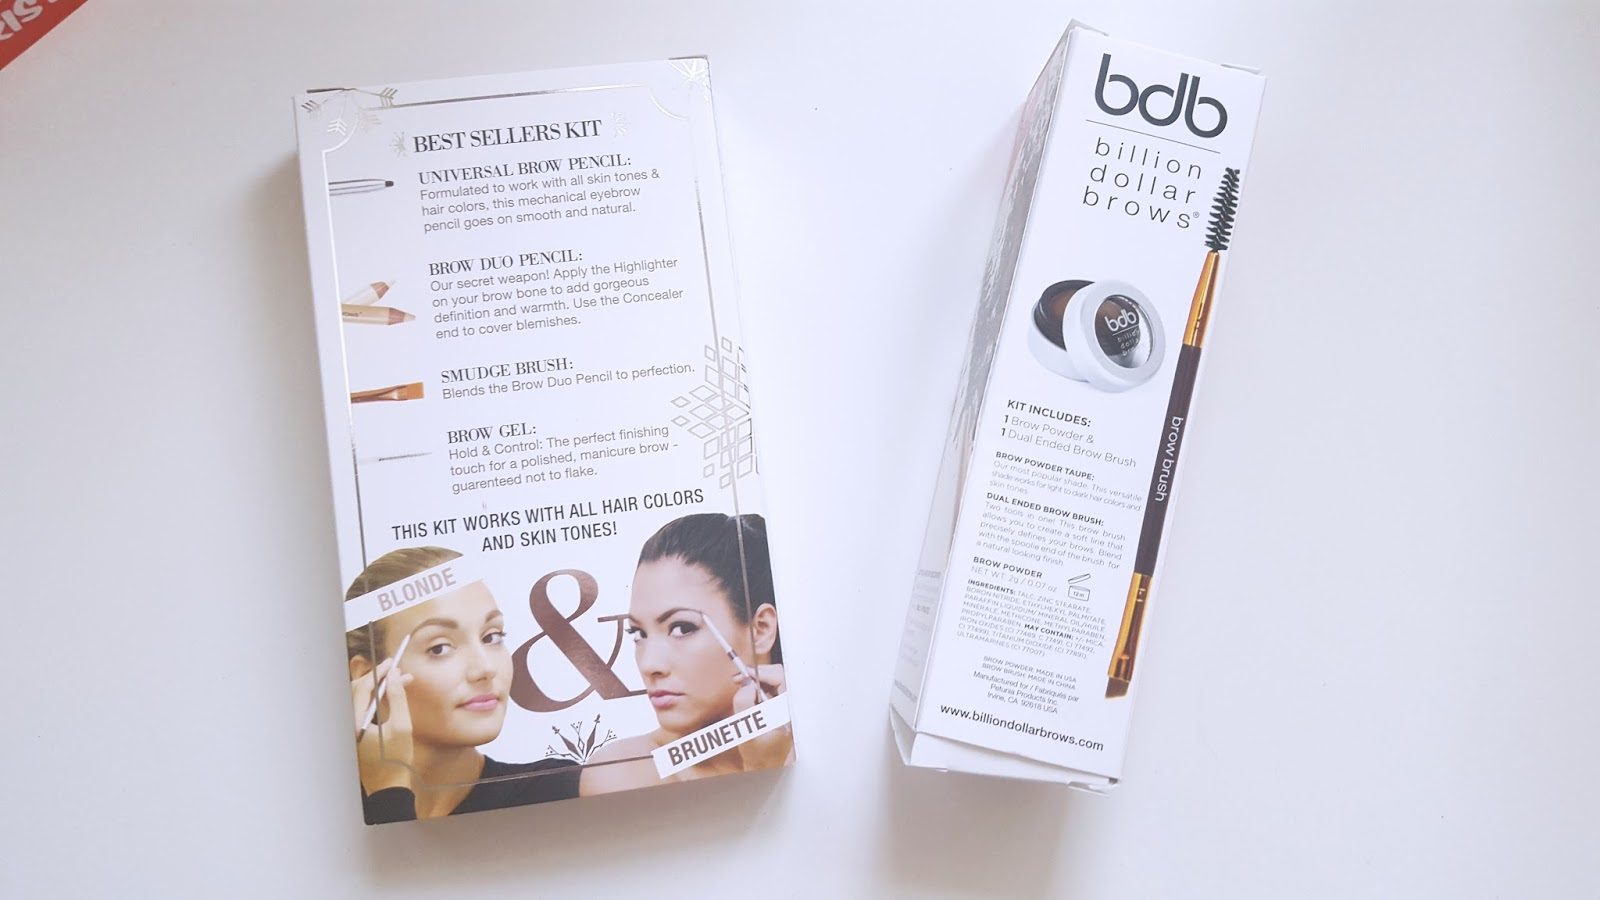 Billion Dollar Brows Best Sellers Kit 60 seconds to brilliant brows